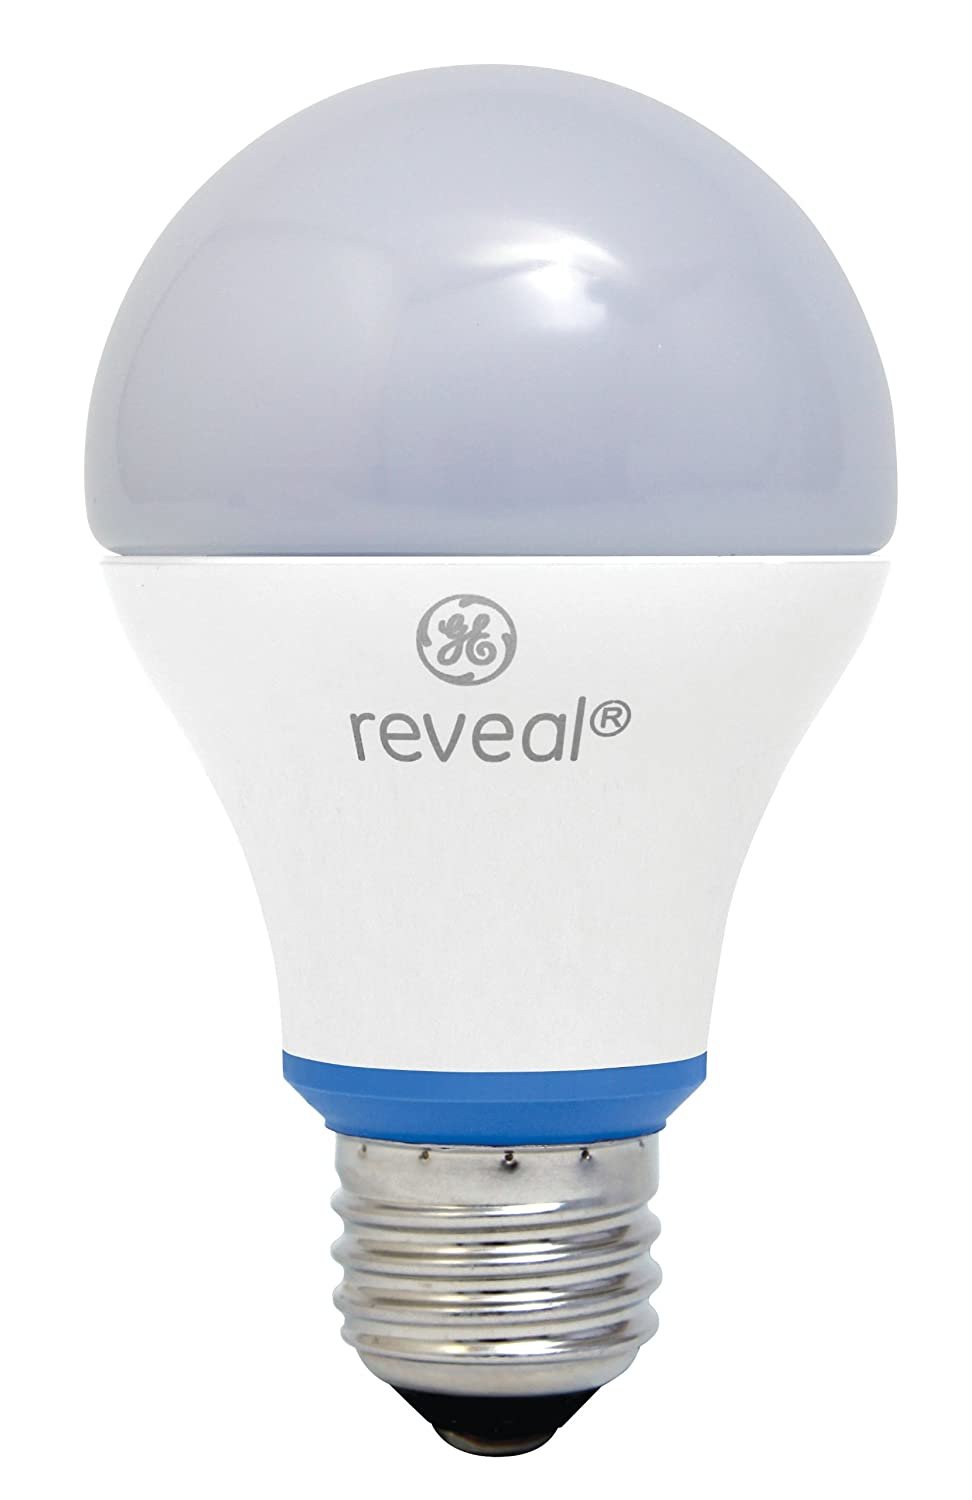 GE Lighting 69204 Reveal LED 11-Watt (60-watt equivalent) 570-Lumen A19 Dimmable Light Bulb with Medium Base - Led Household Light Bulbs - Amazon.com  sc 1 st  Amazon.com & GE Lighting 69204 Reveal LED 11-Watt (60-watt equivalent) 570 ... azcodes.com